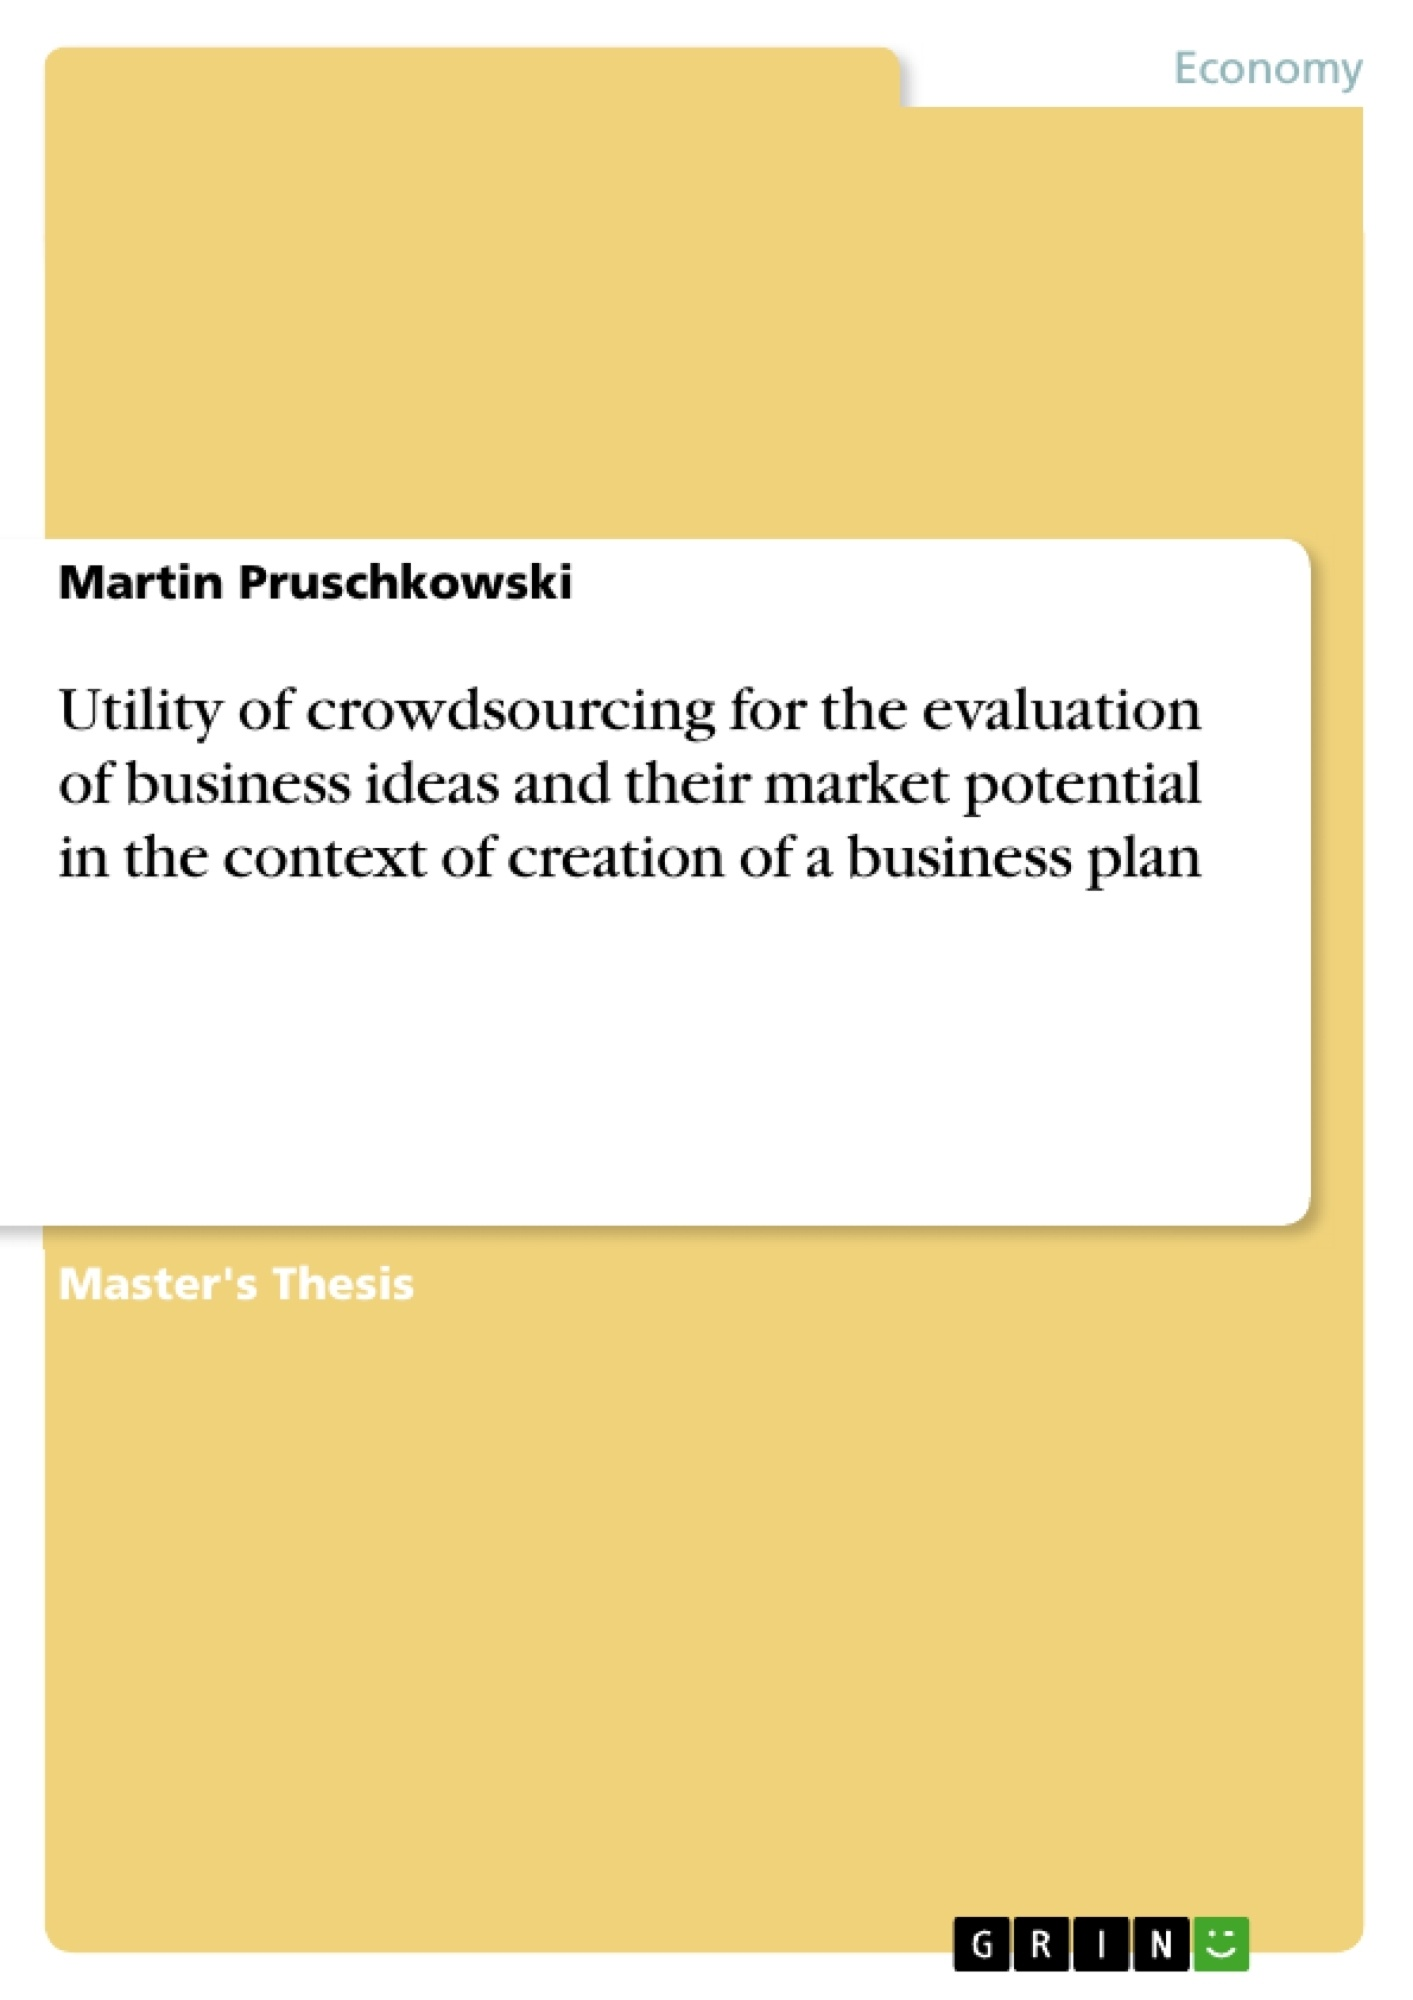 Title: Utility of crowdsourcing for the evaluation of business ideas and their market potential in the context of creation of a business plan